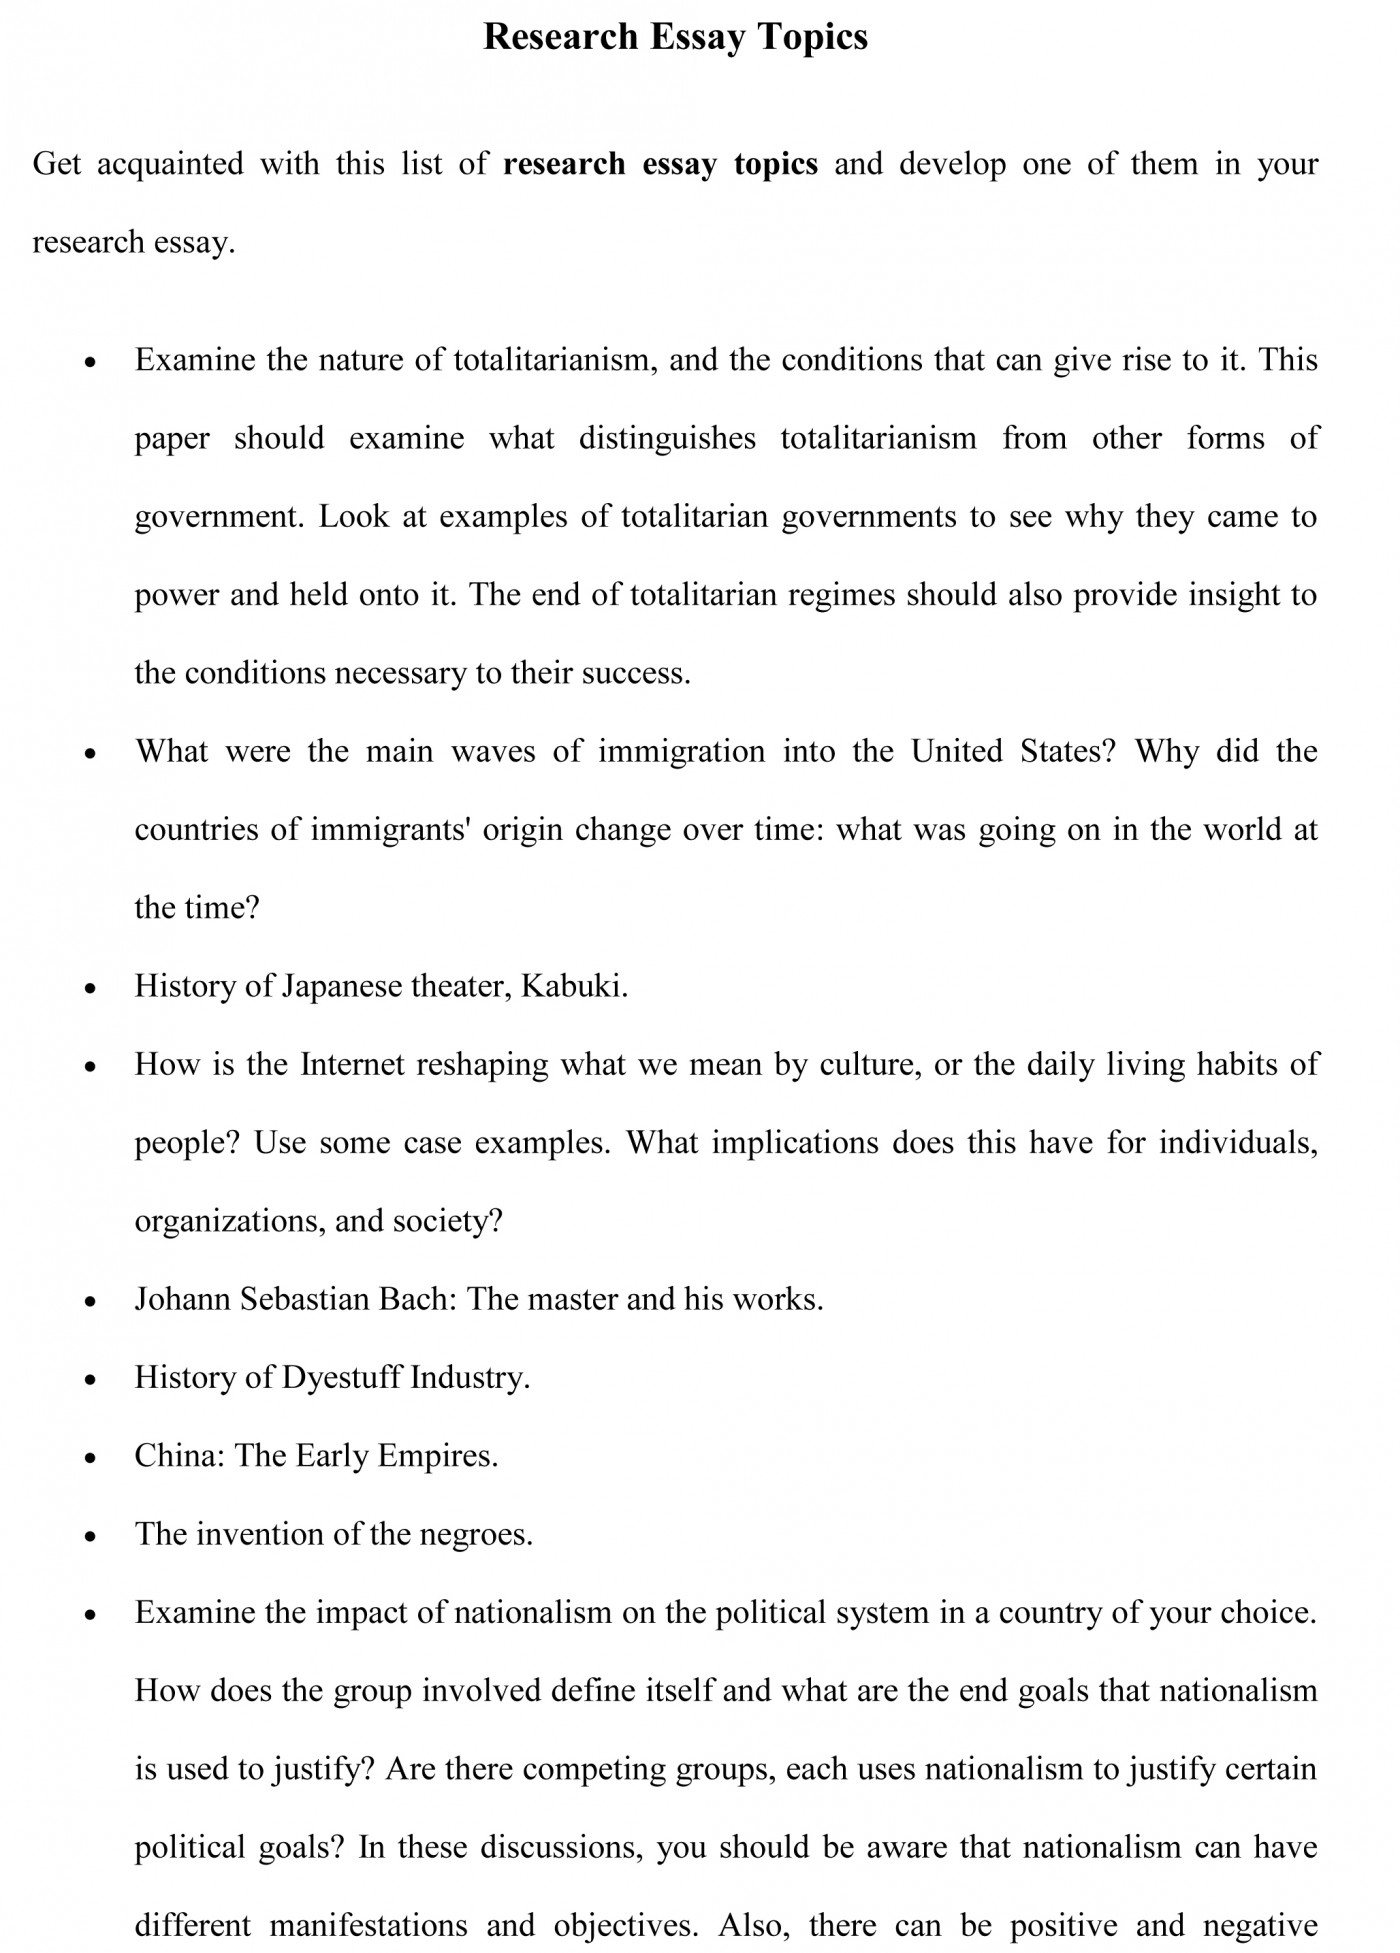 006 Research Essay Topics Sample Good Shocking Paper Reddit Us History For High School 1400